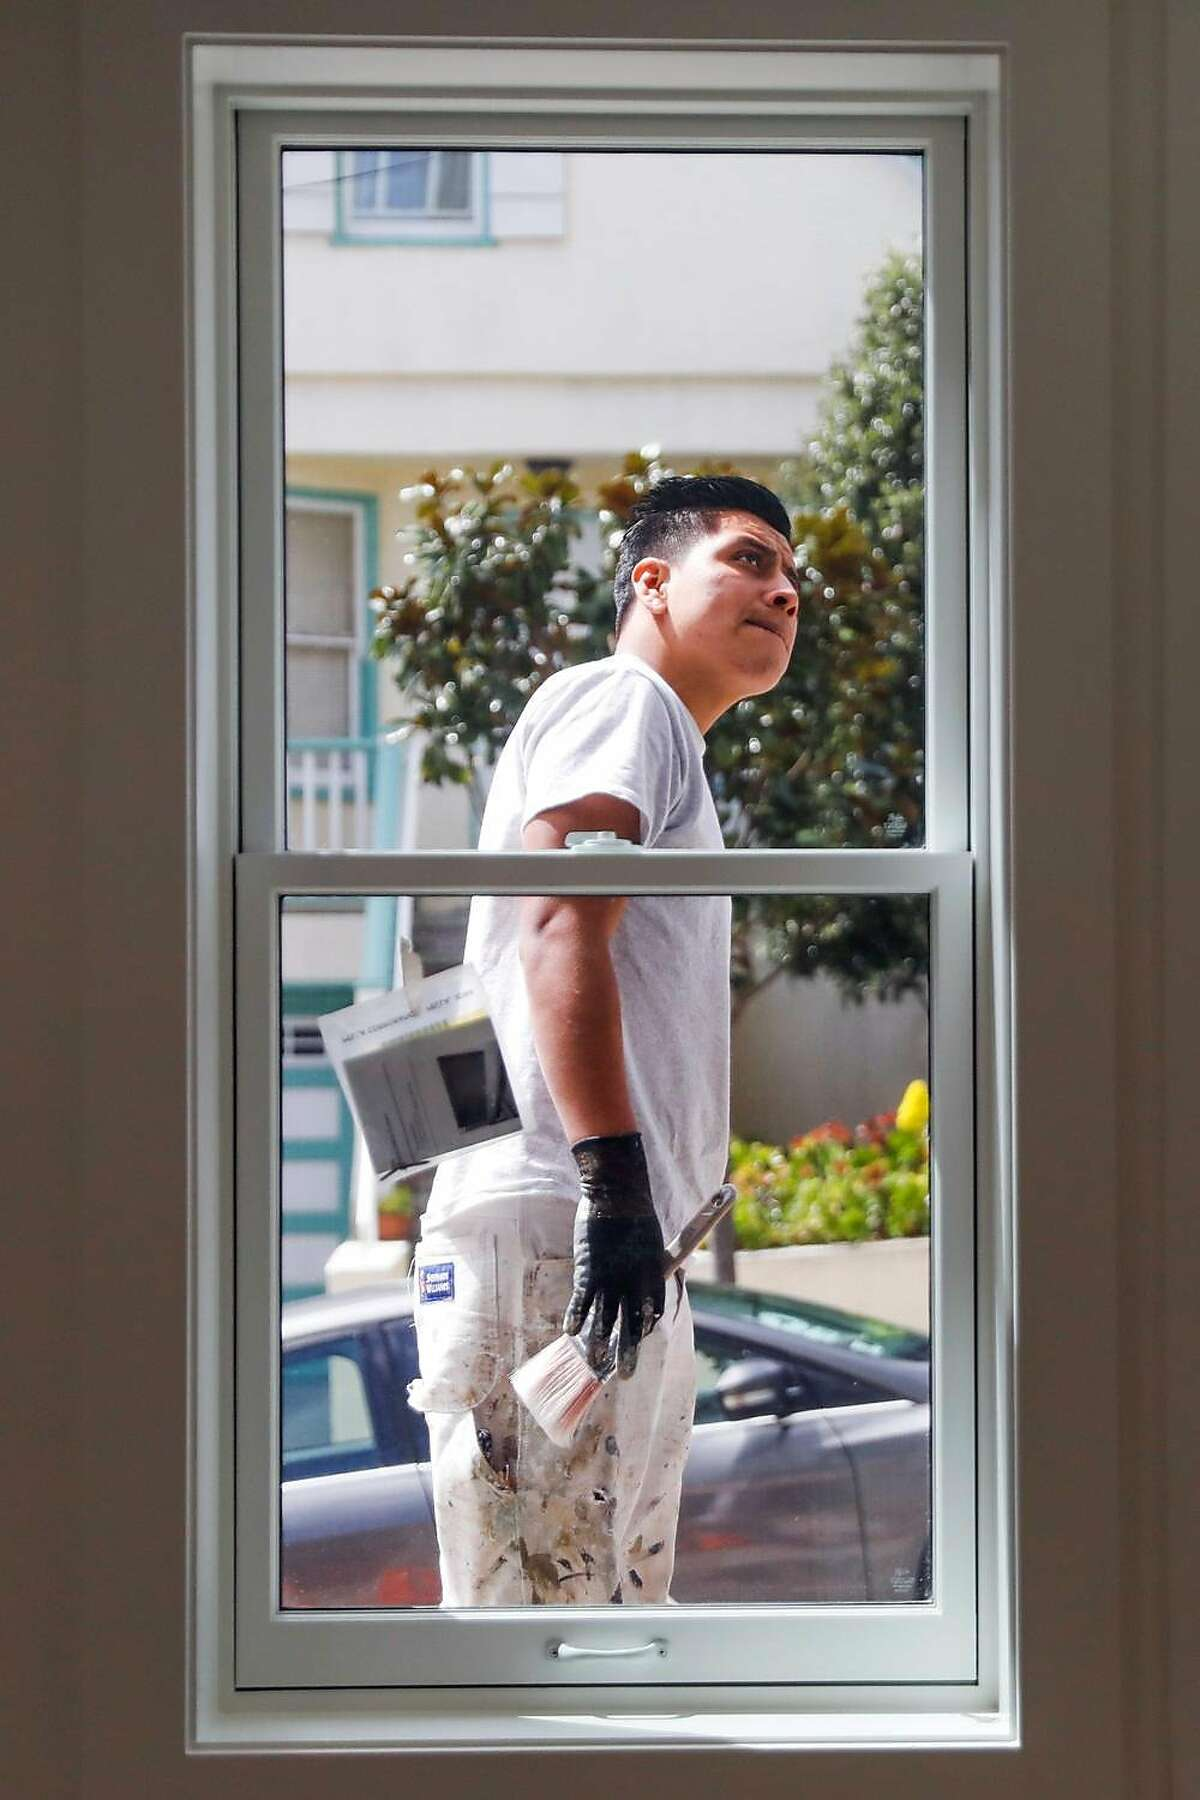 Construction worker Anelson Mejia puts the finishing touches on the exterior of an apartment that was converted from a garage into an rental unit on Roanoke Street in San Francisco.